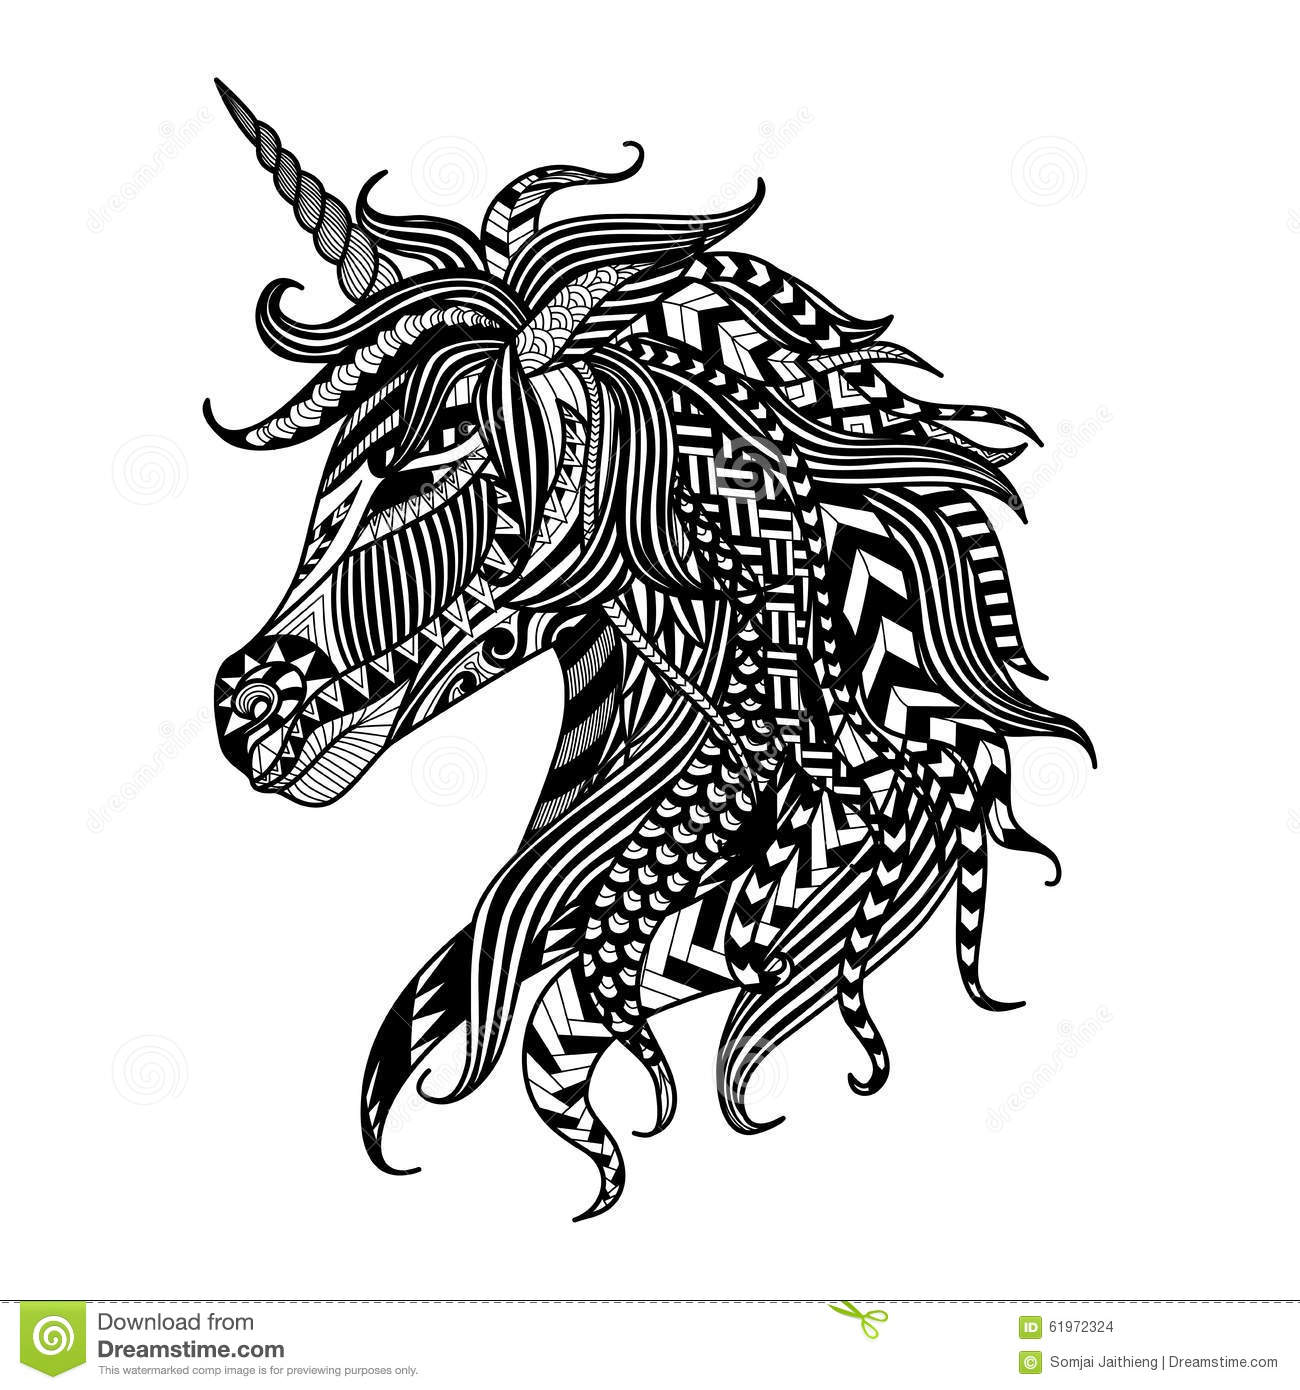 Abstract Unicorn Coloring Pages : Drawing unicorn zentangle style for coloring book tattoo